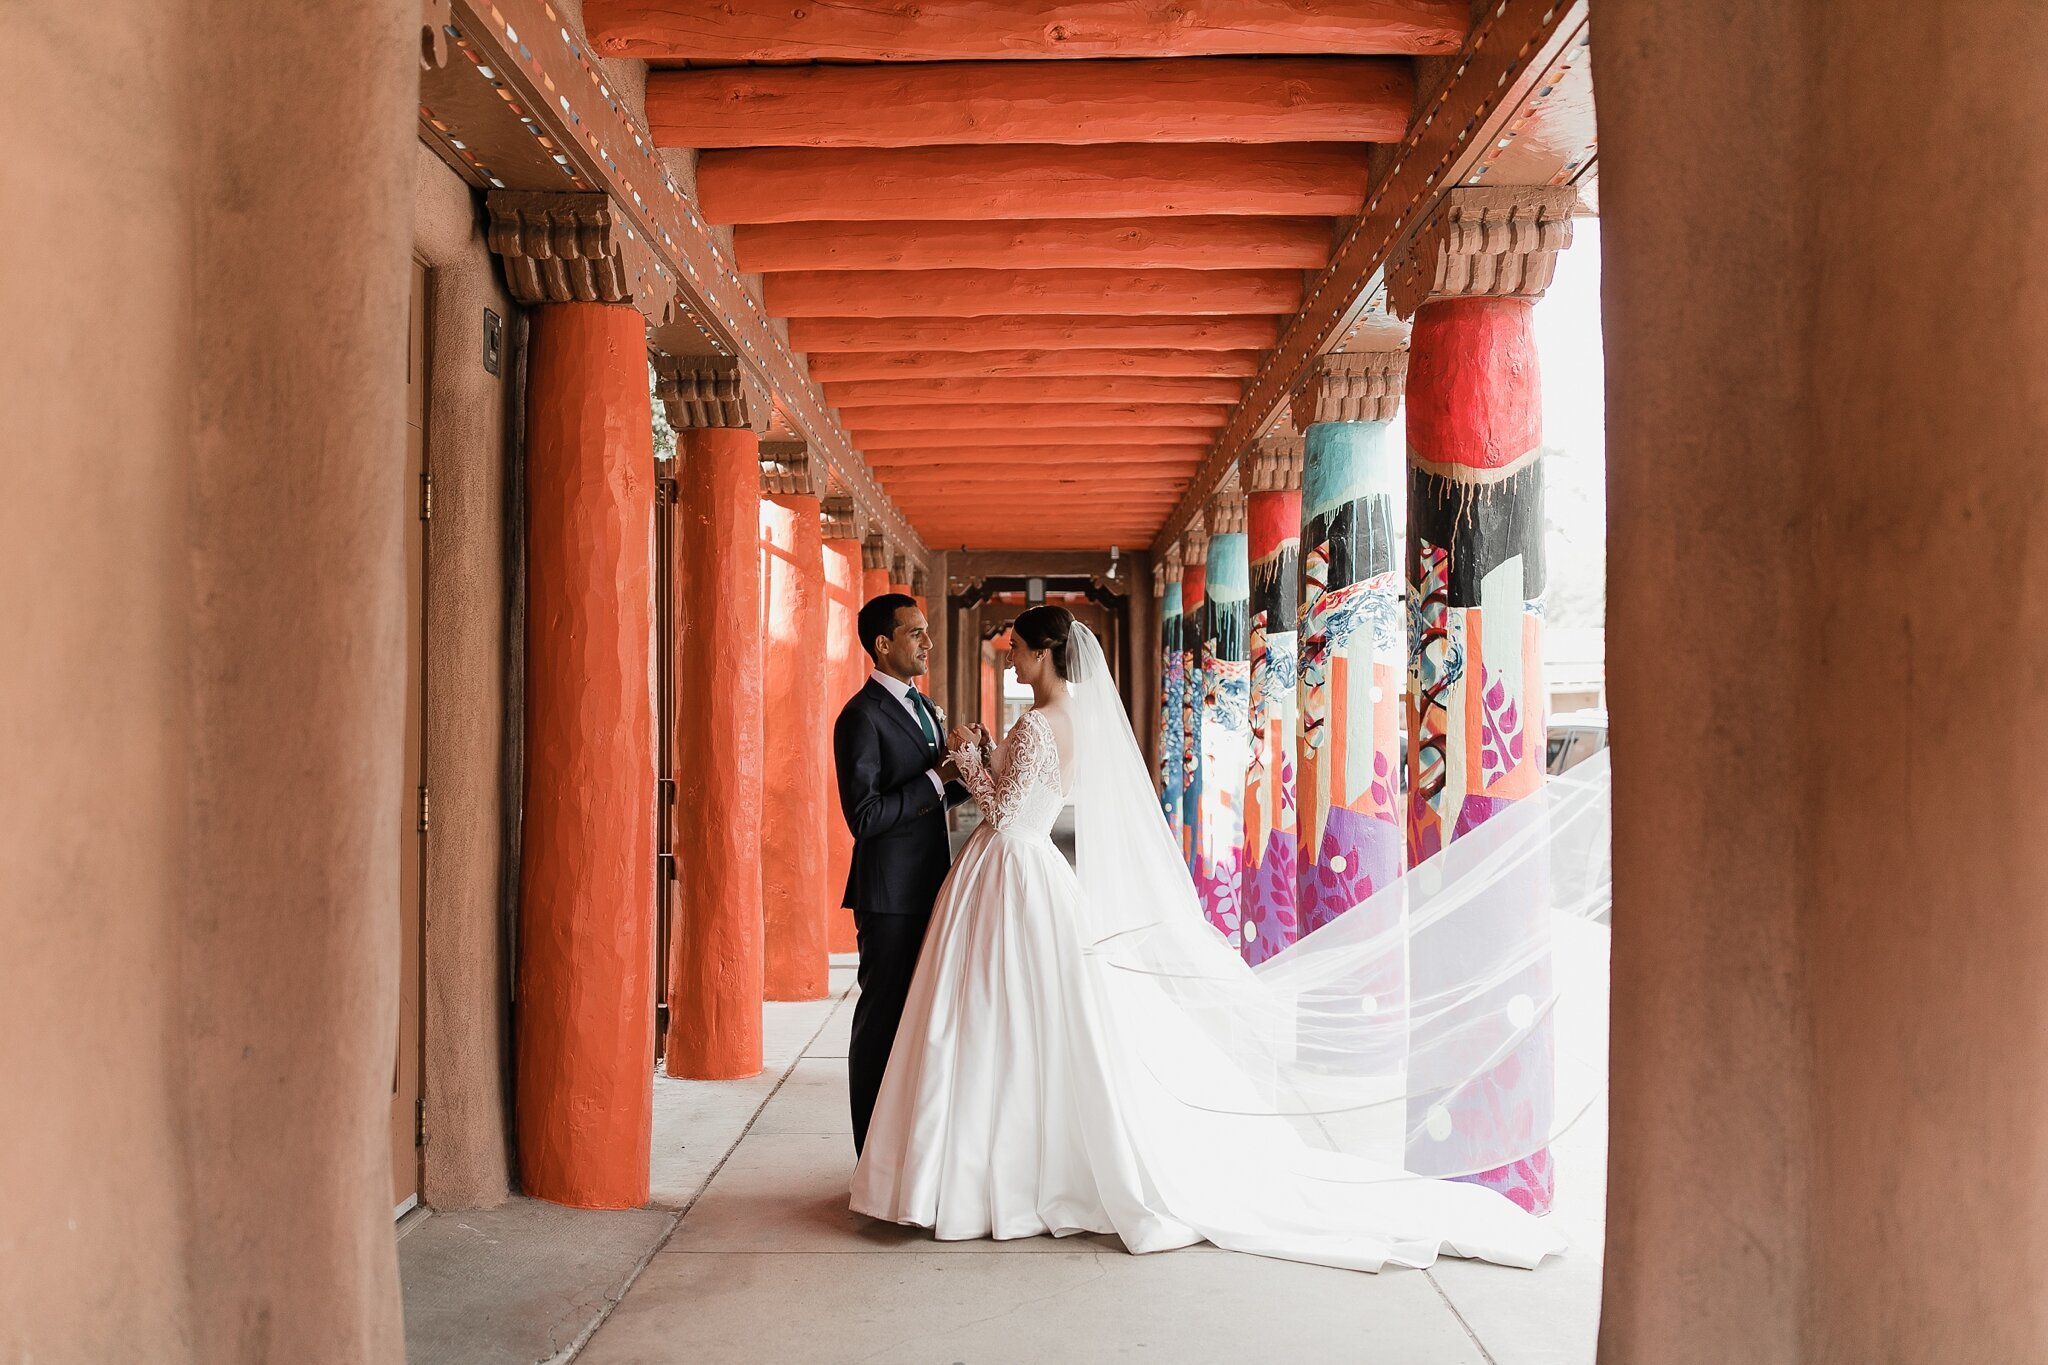 Alicia+lucia+photography+-+albuquerque+wedding+photographer+-+santa+fe+wedding+photography+-+new+mexico+wedding+photographer+-+new+mexico+wedding+-+hindu+wedding+-+catholic+wedding+-+multicultural+wedding+-+santa+fe+wedding_0066.jpg